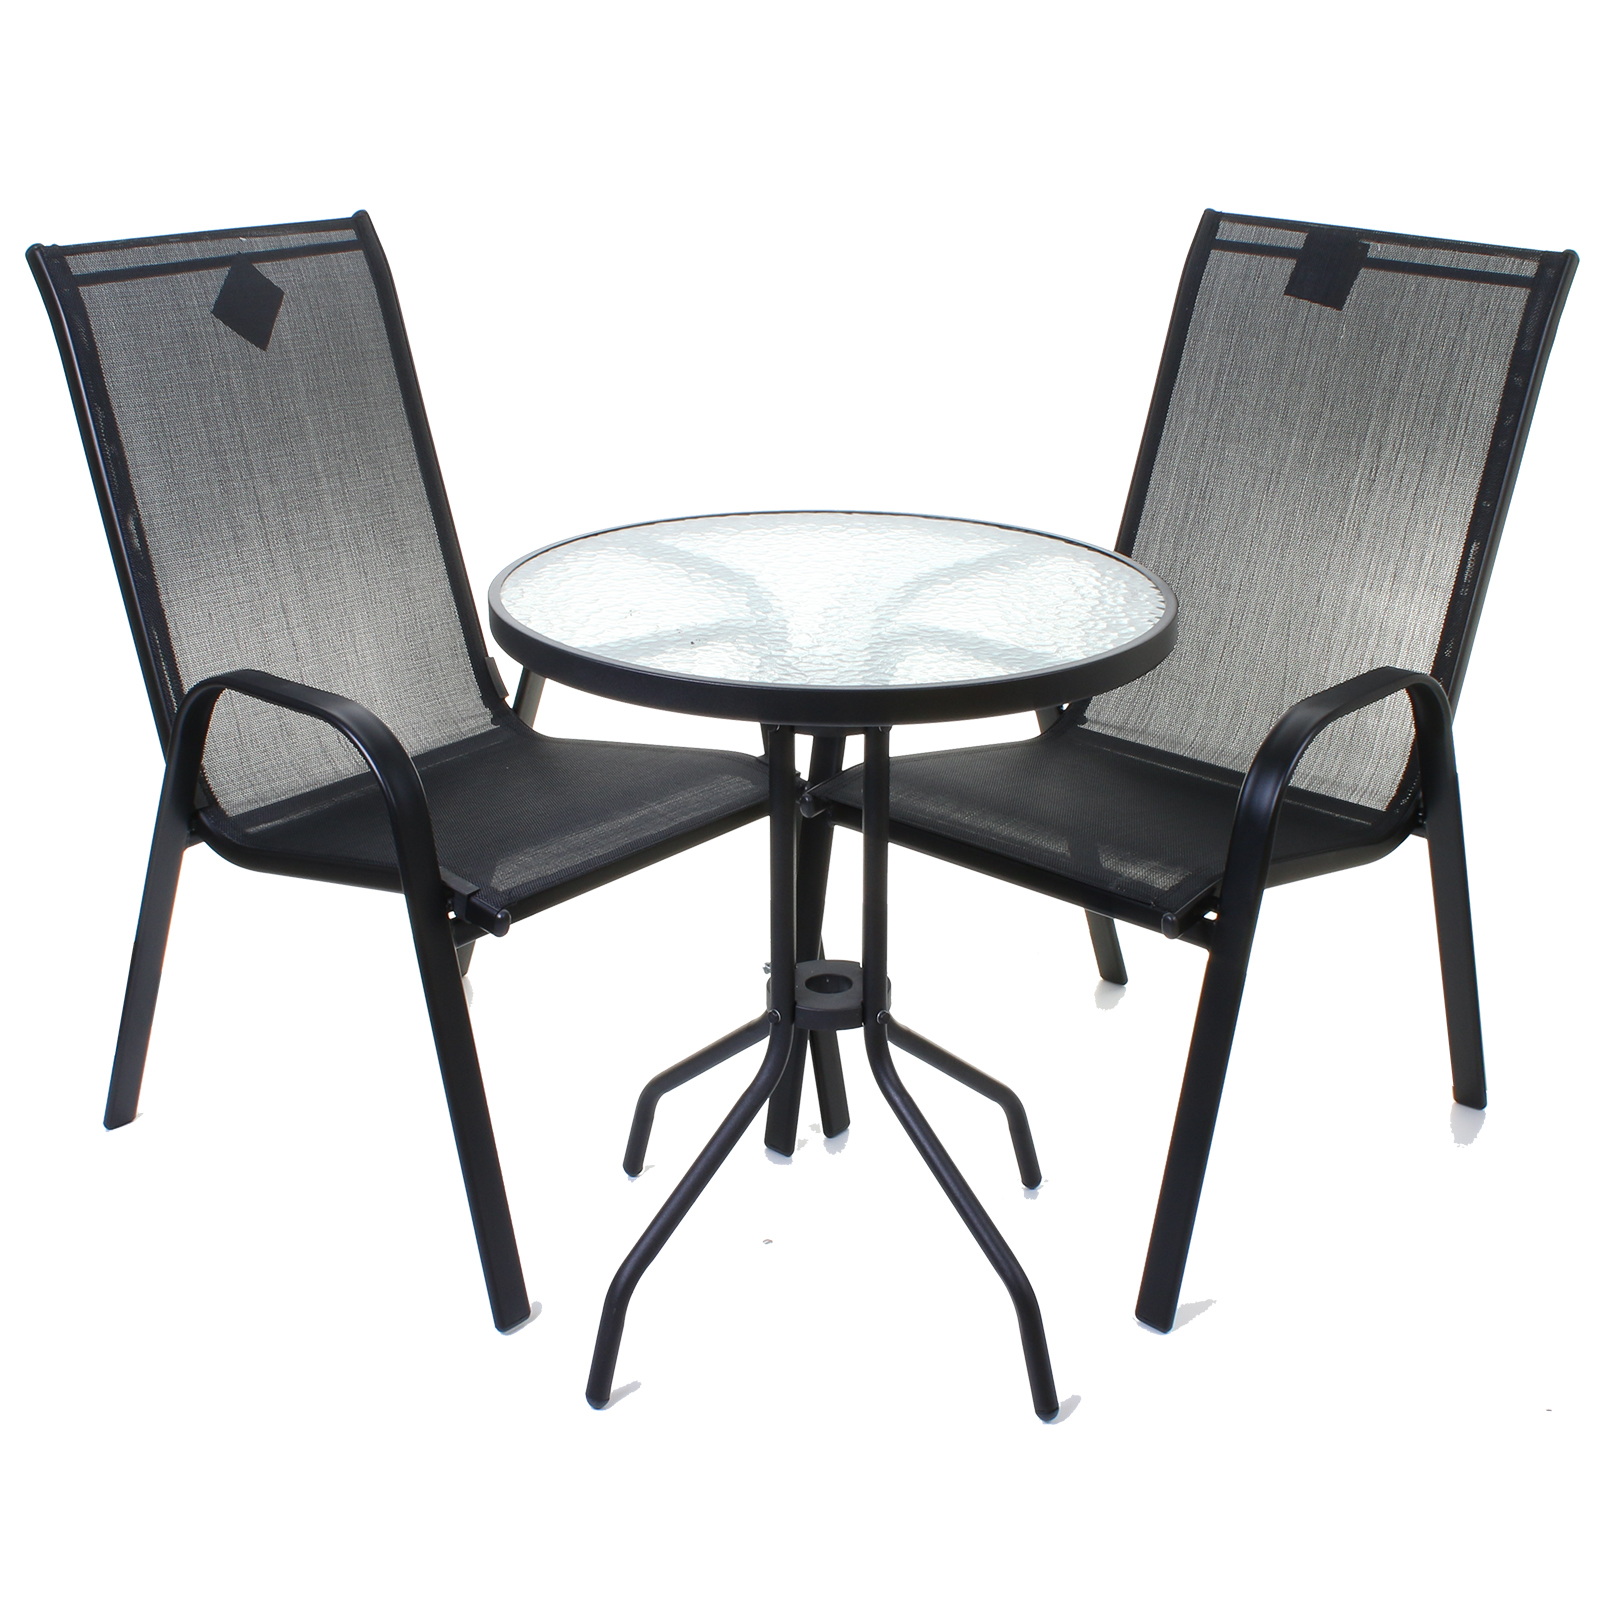 patio bistro table and chairs black chair covers with blue sash garden furniture set outdoor round rectangular